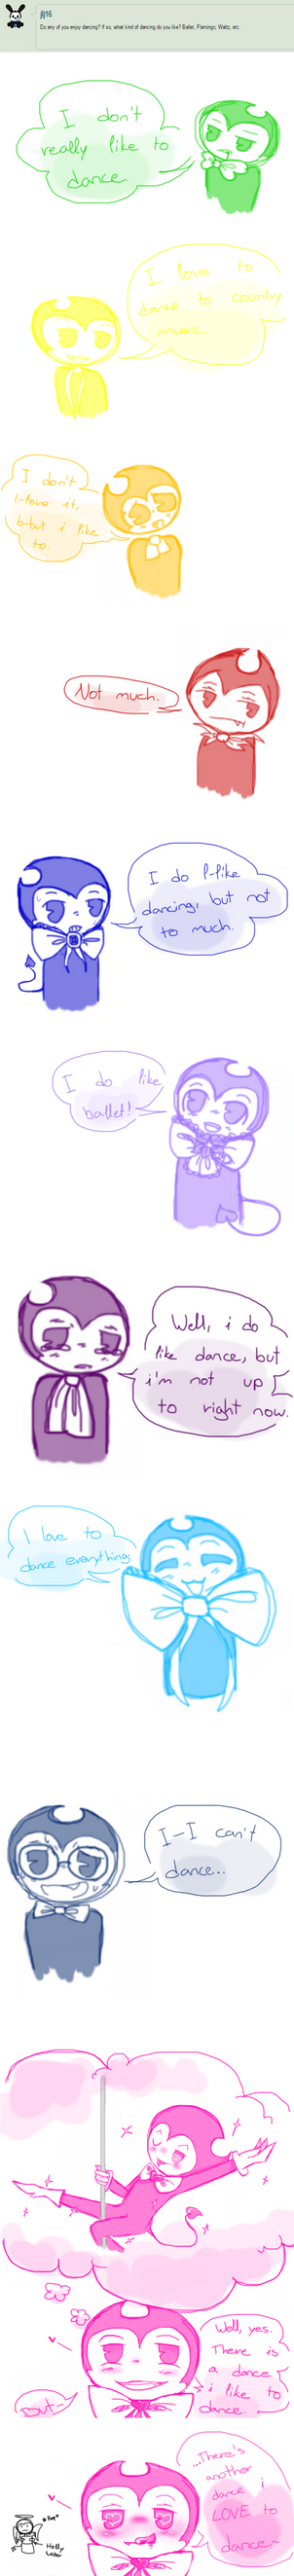 ASK 23# BATRM by MariaCool1234